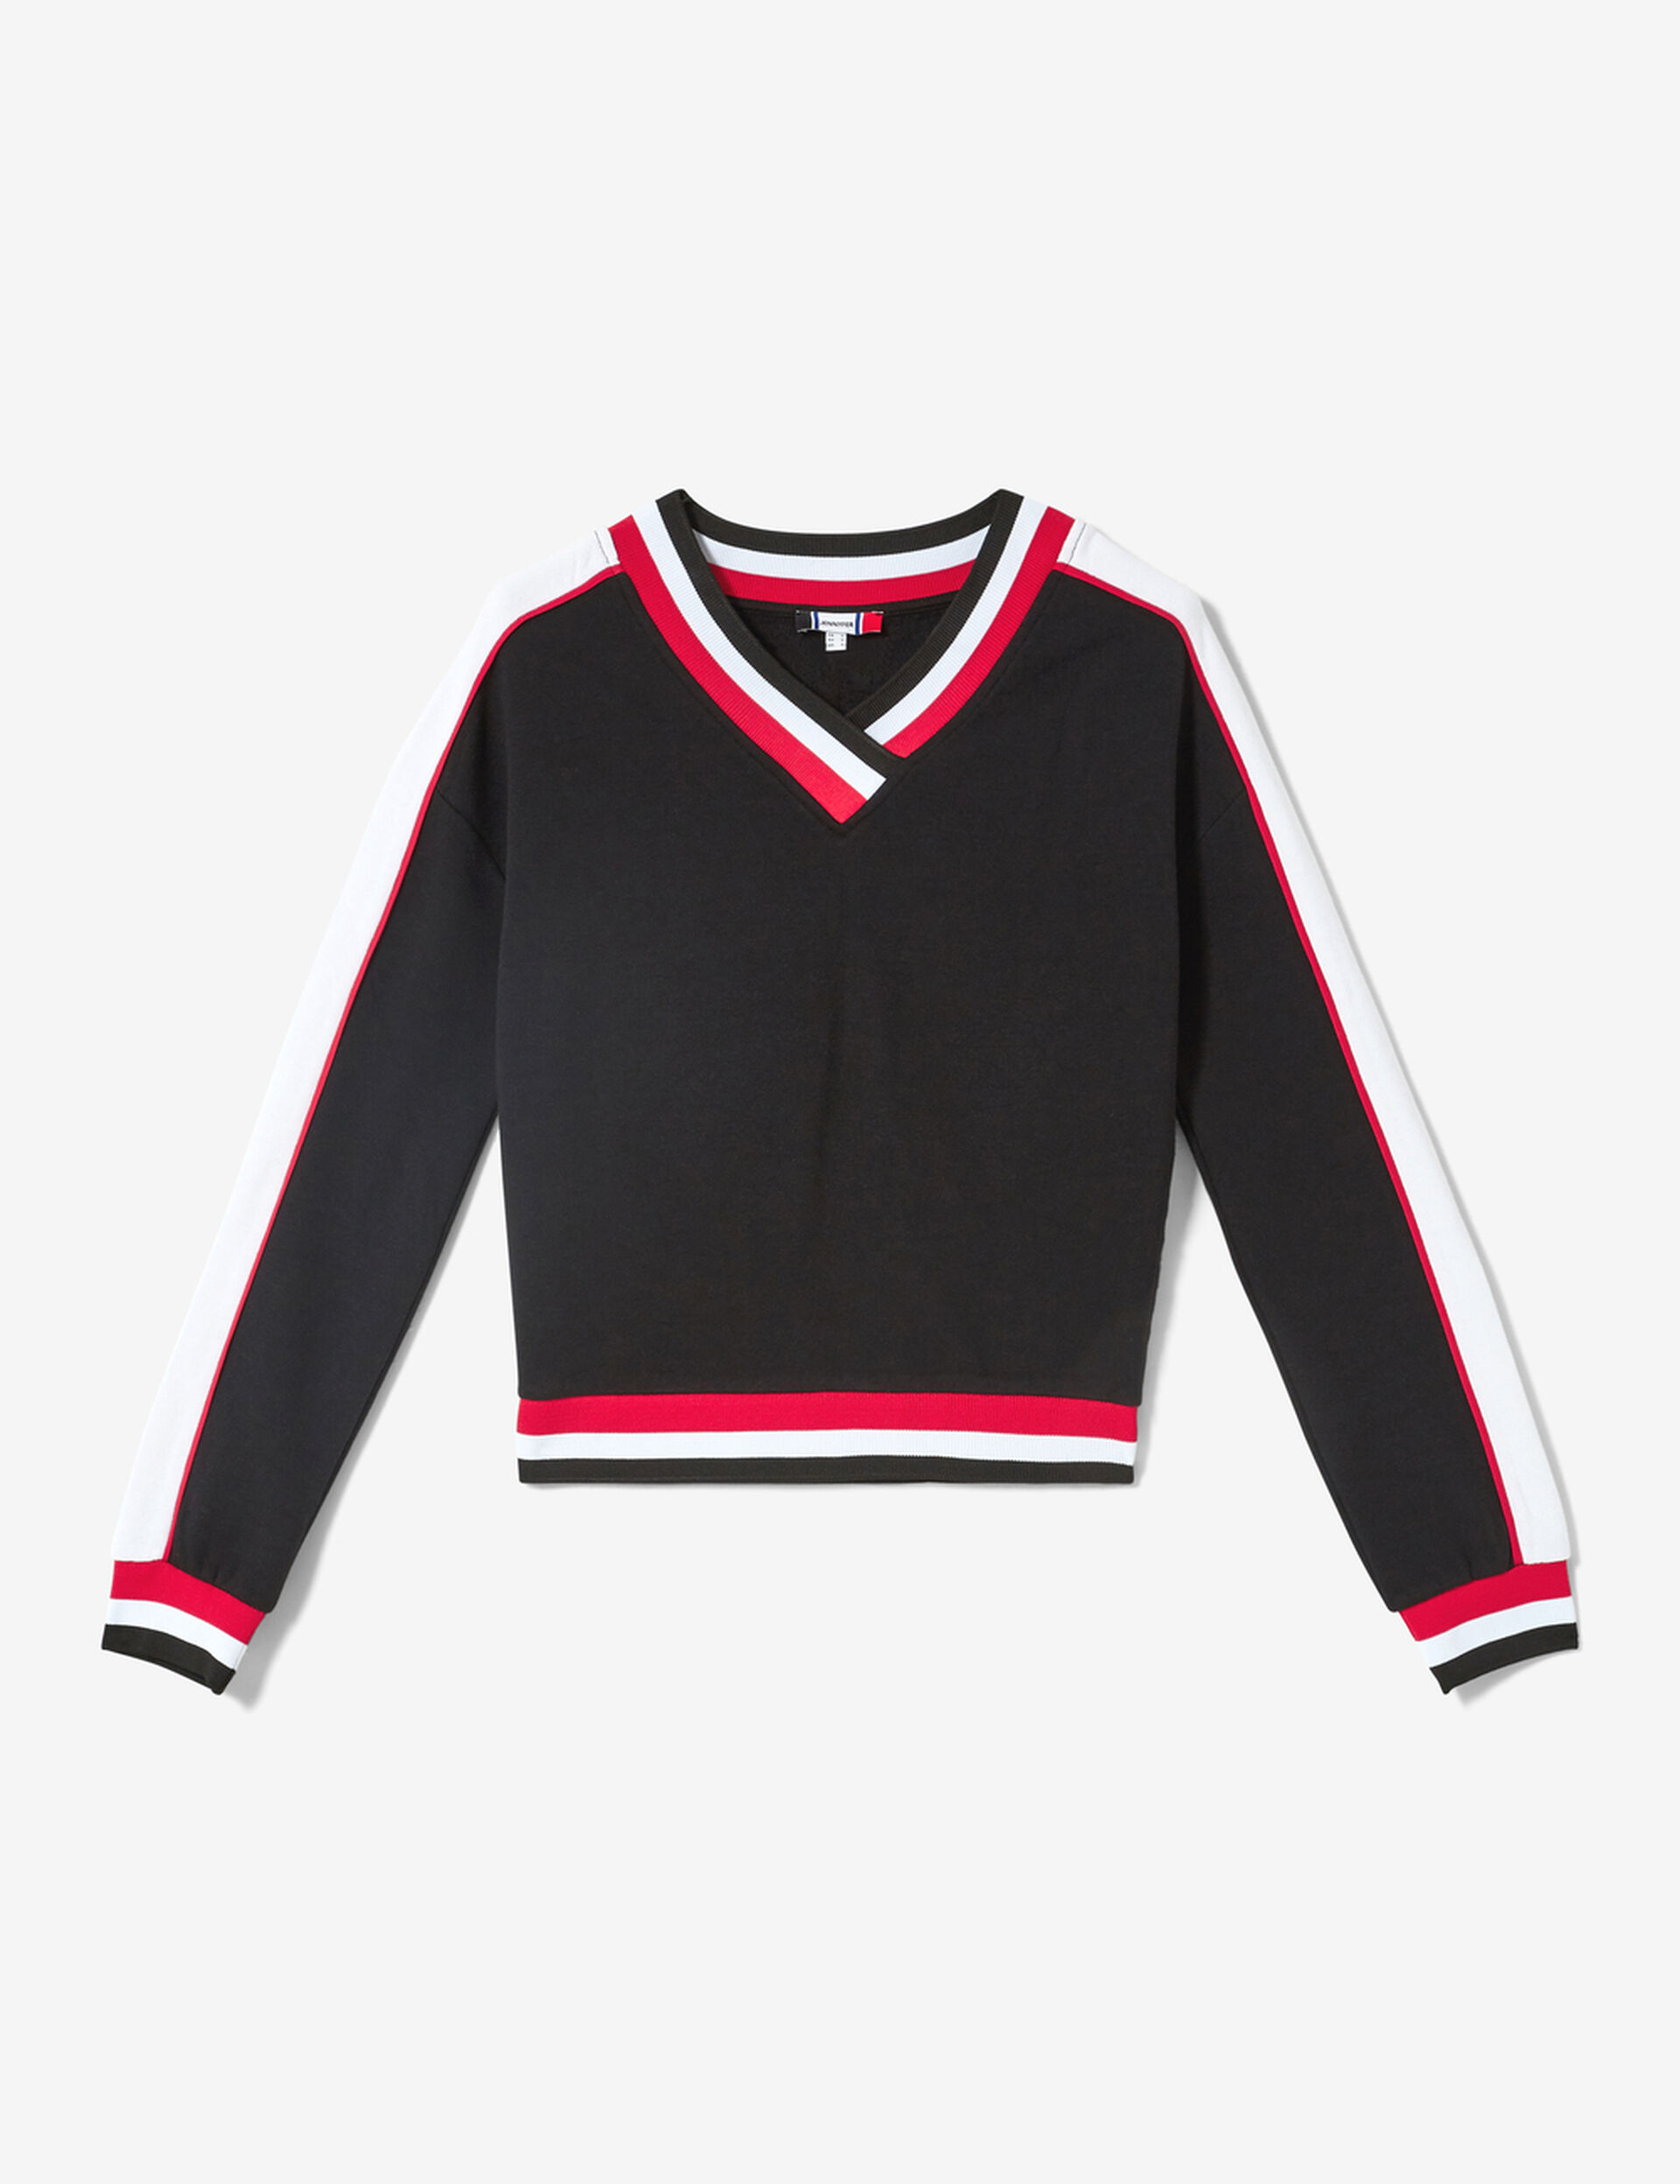 Black, red and white sweatshirt with striped edging detail